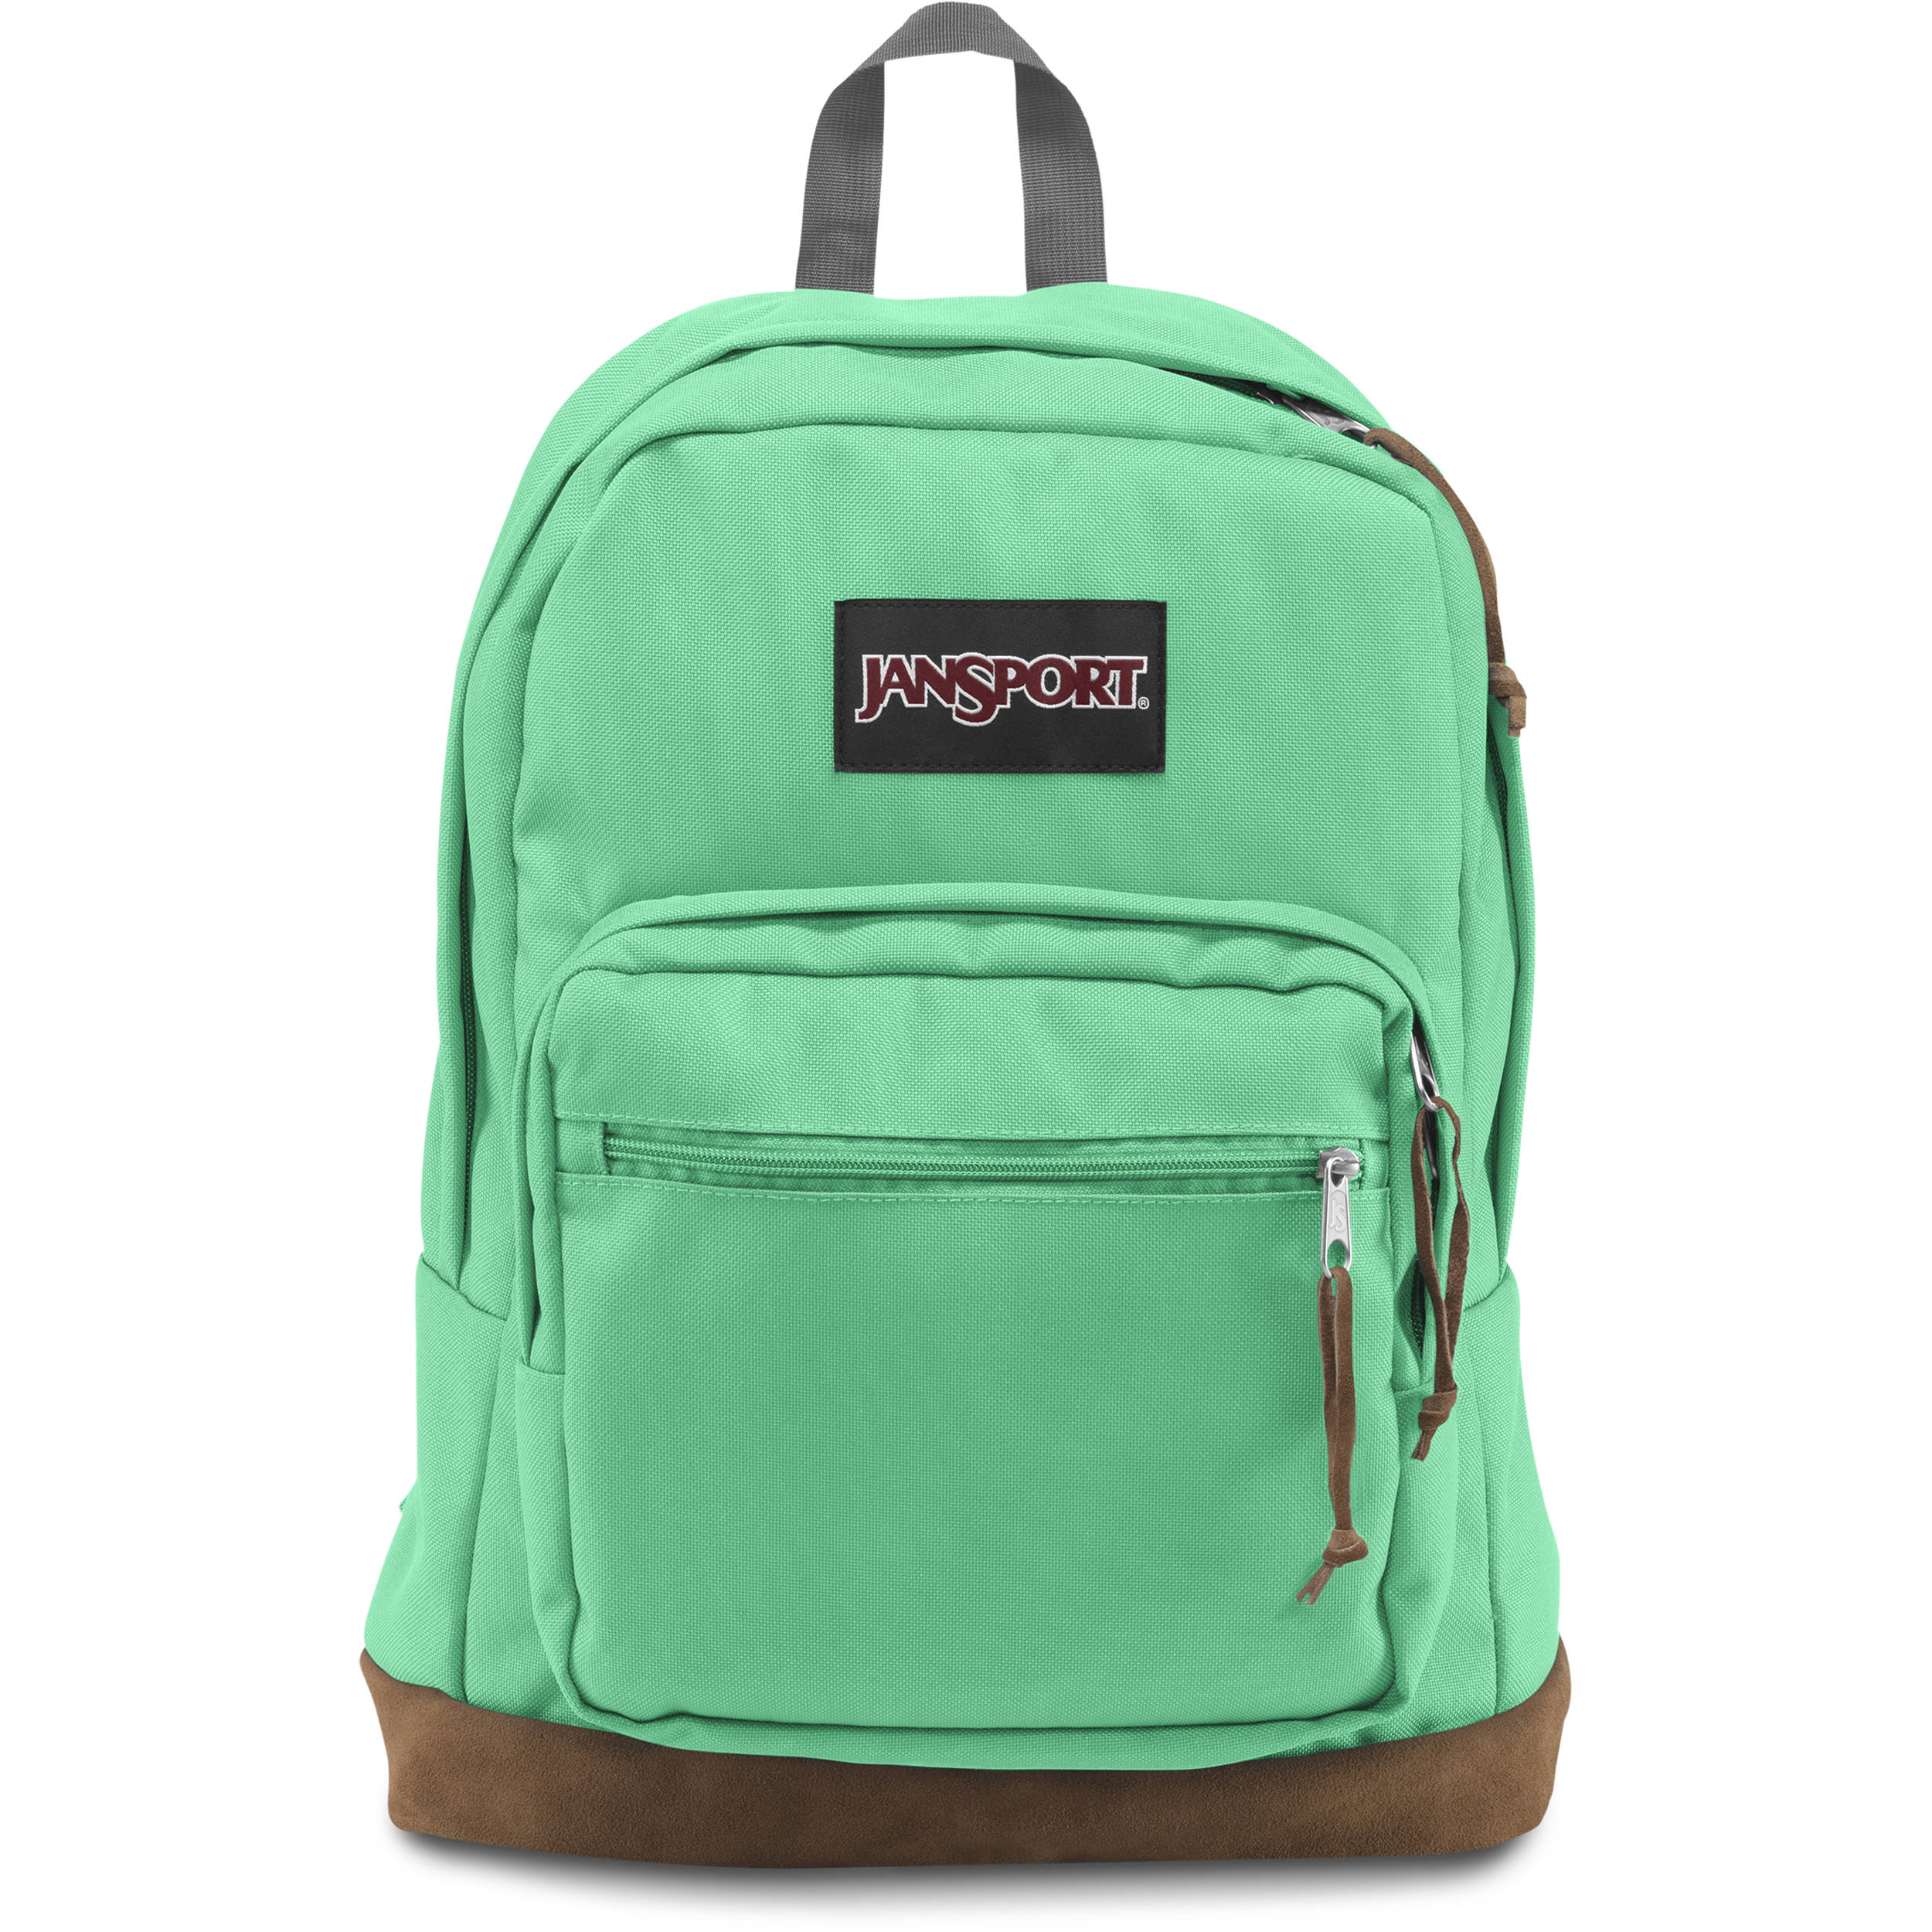 Jansport Backpack Blue Green - Crazy Backpacks